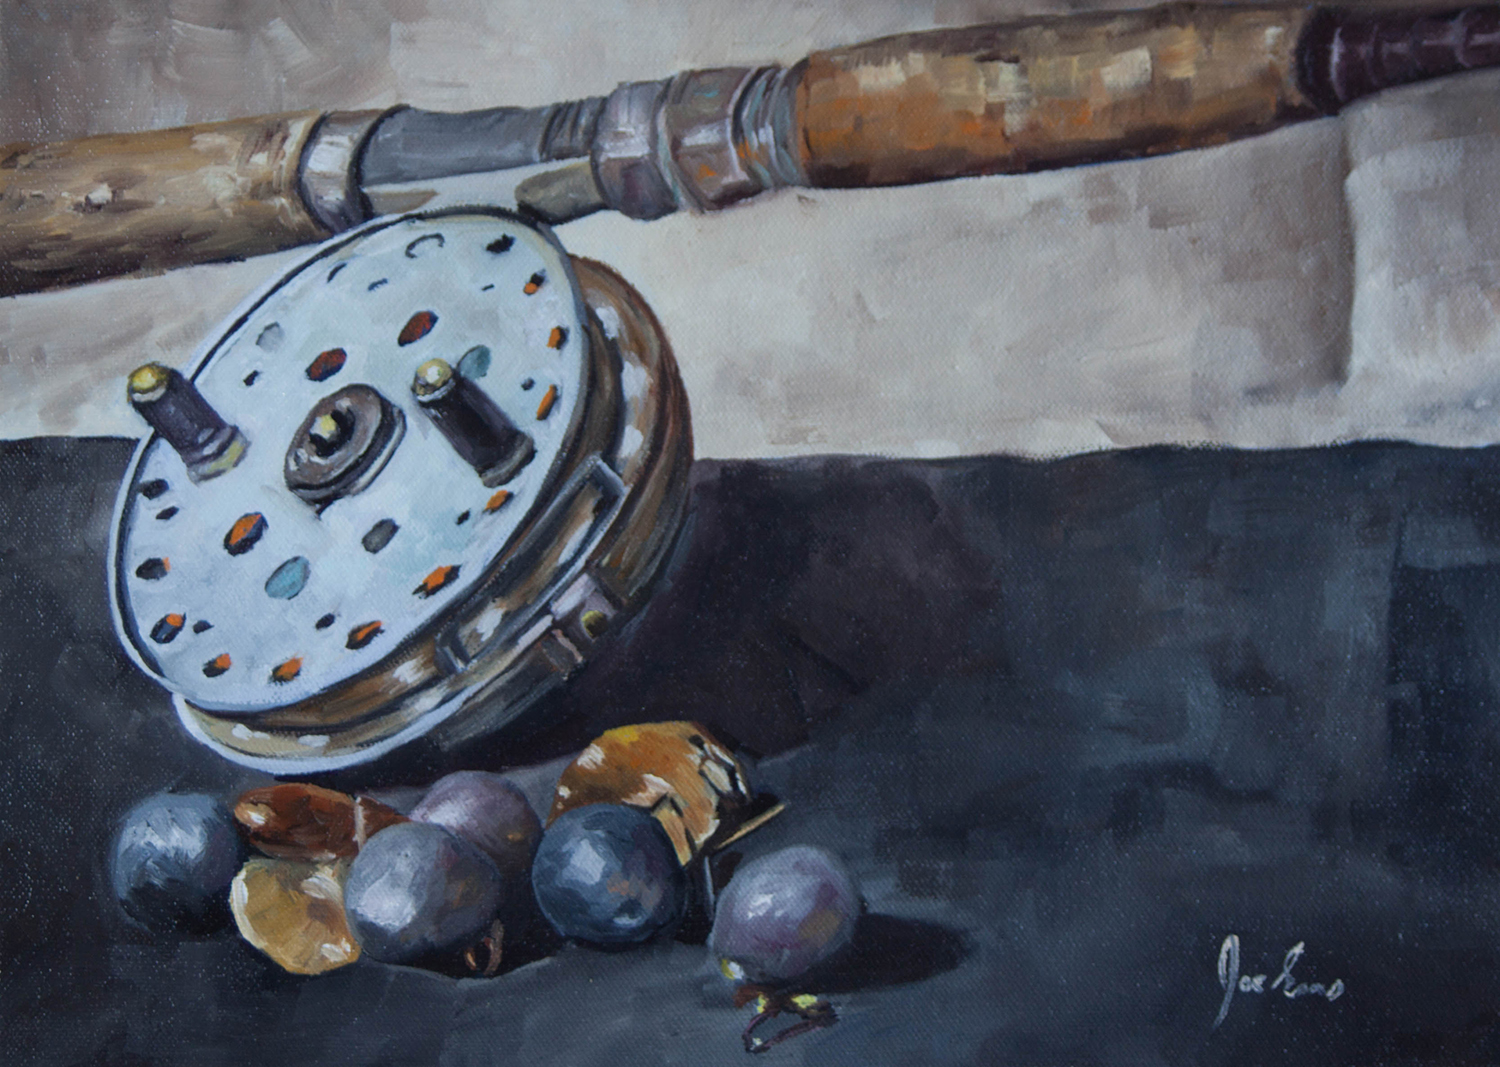 """Reel and Gear"" is a still life oil painting by Joe Enns done from a photo that Joe took of an old fishing rod and reel that belonged to his father along with some river fishing gear."